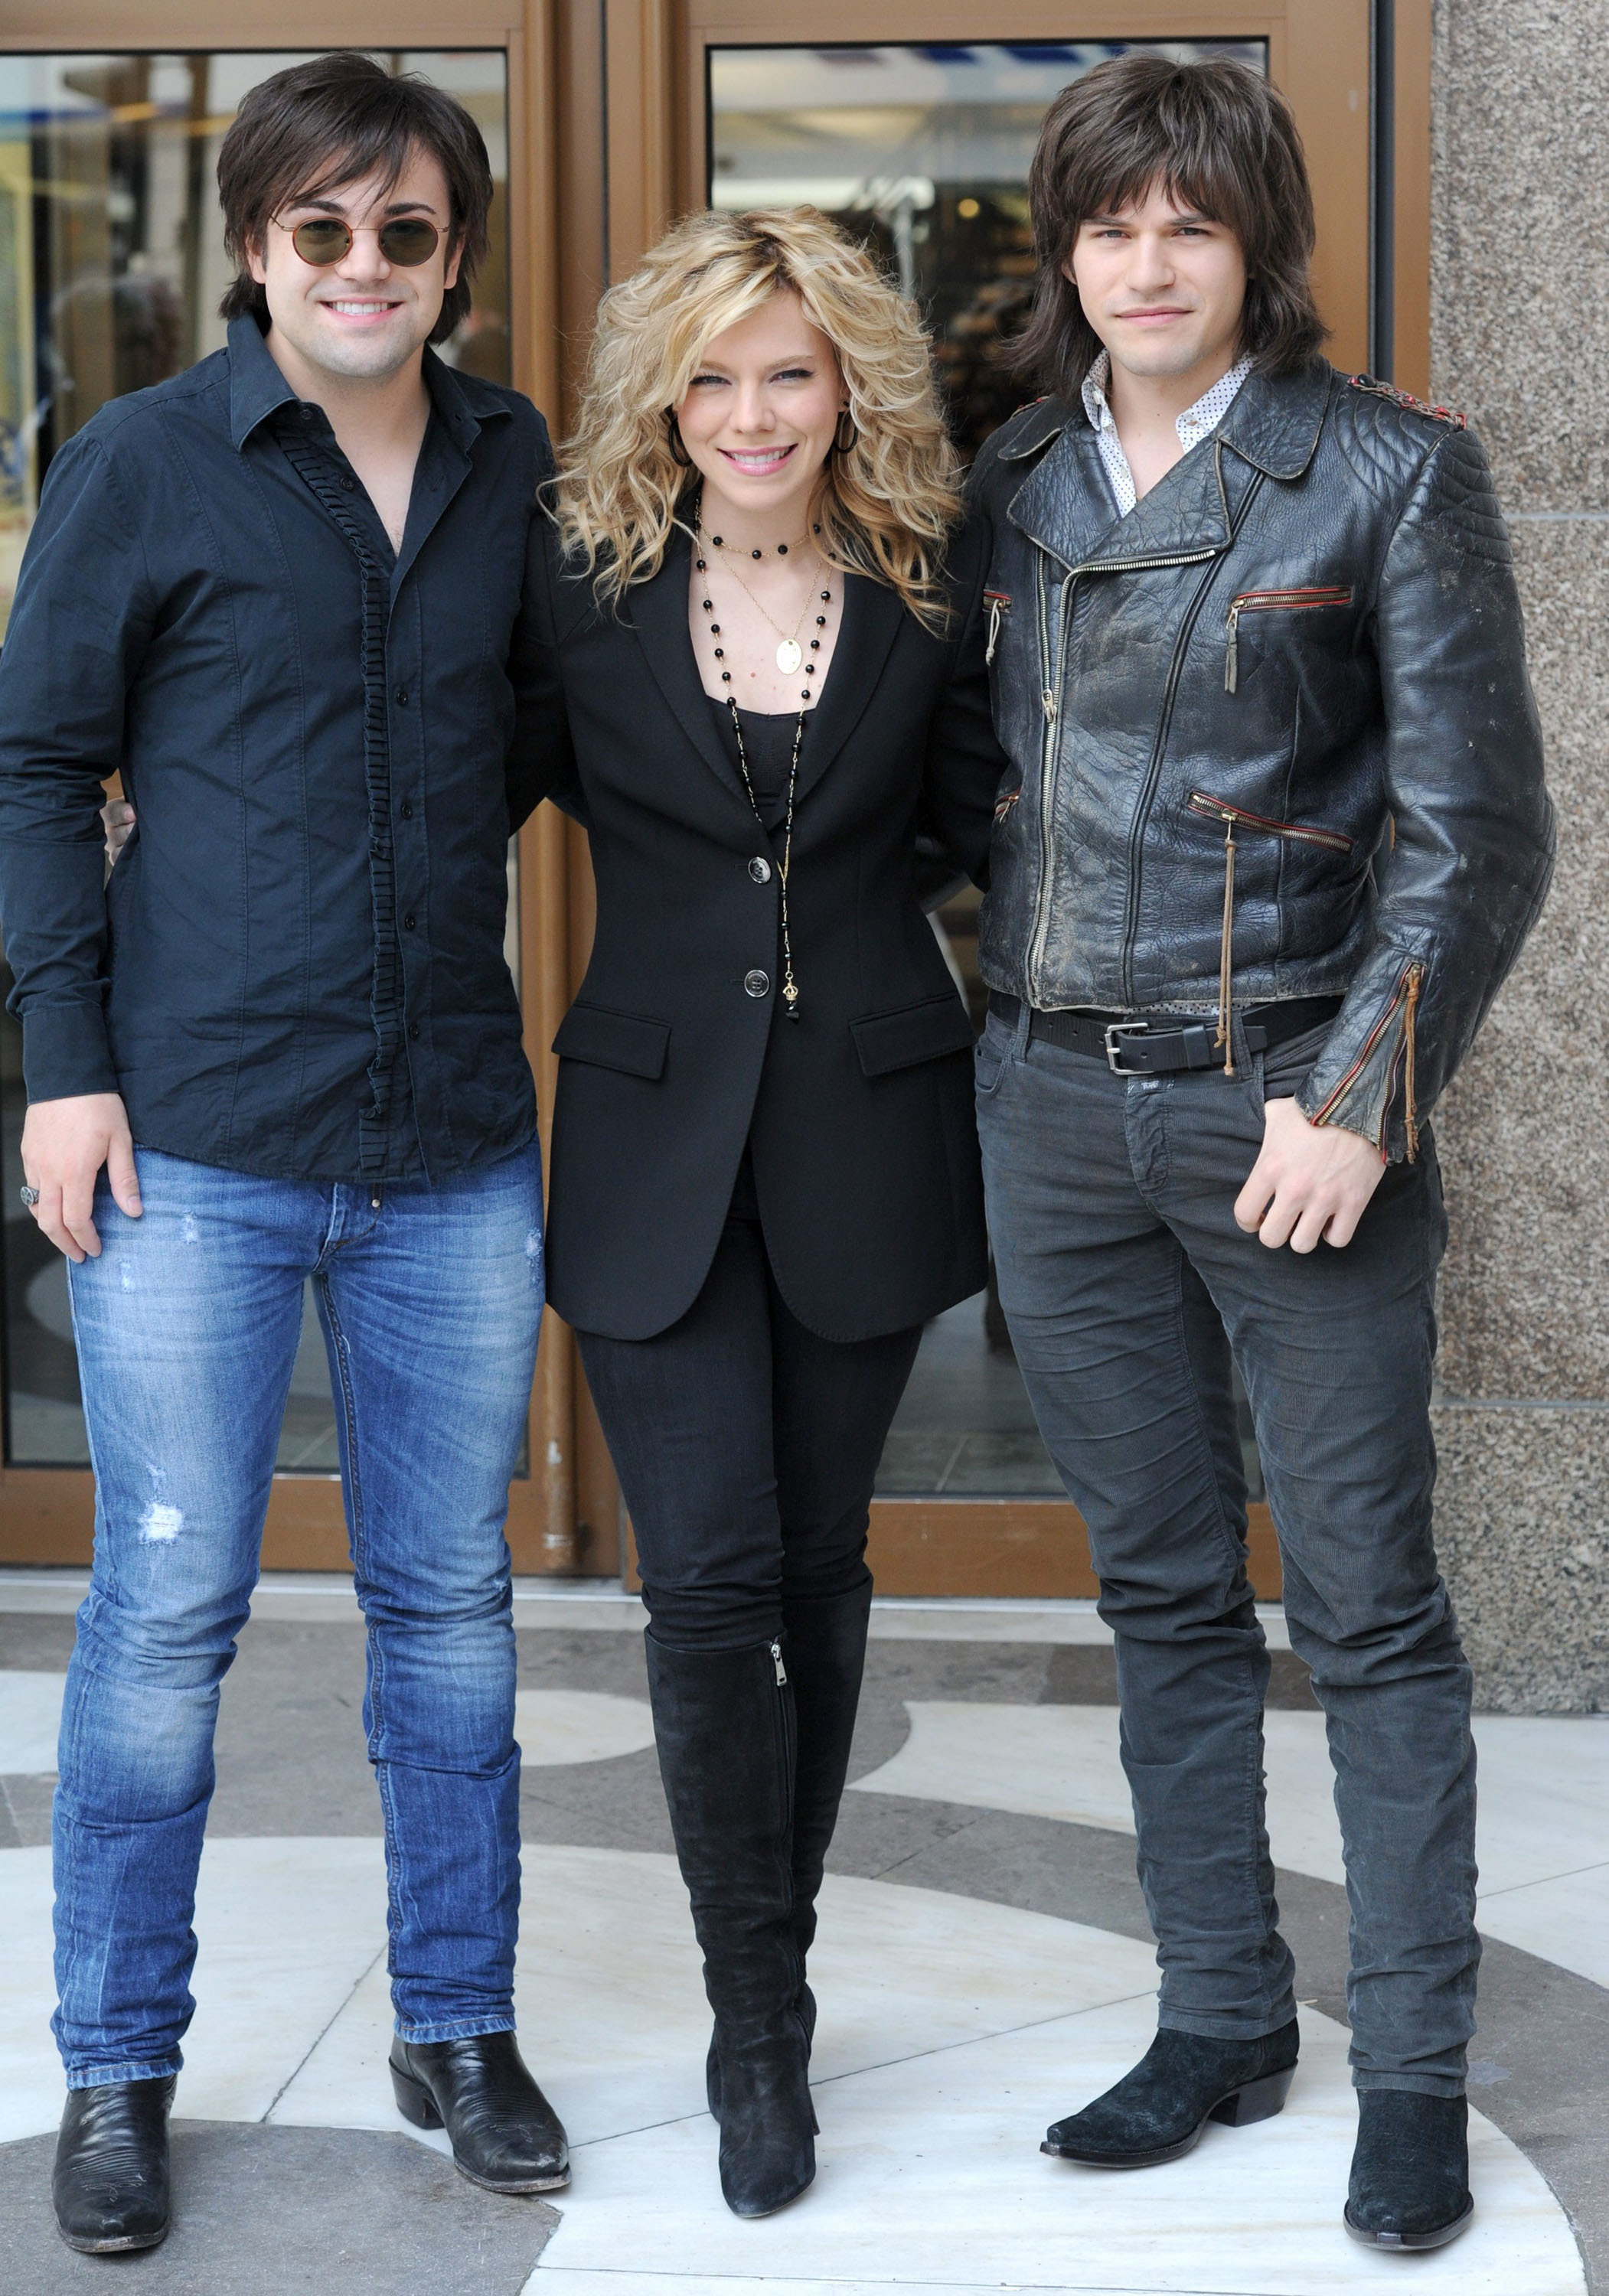 FFN_BIG_Band_Perry_exc_032212_8899598